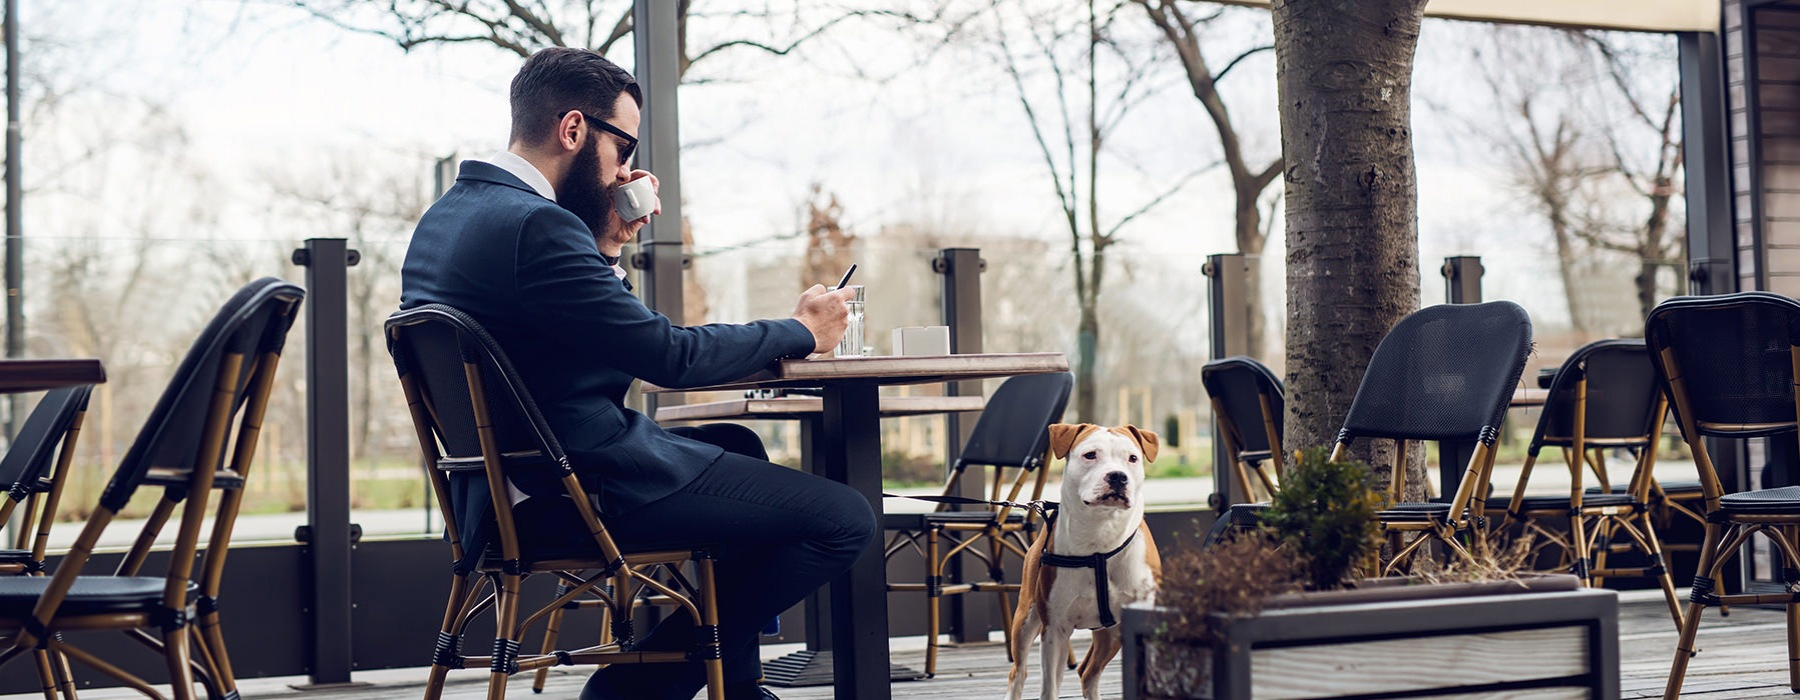 Gentleman sitting outside with pet dog